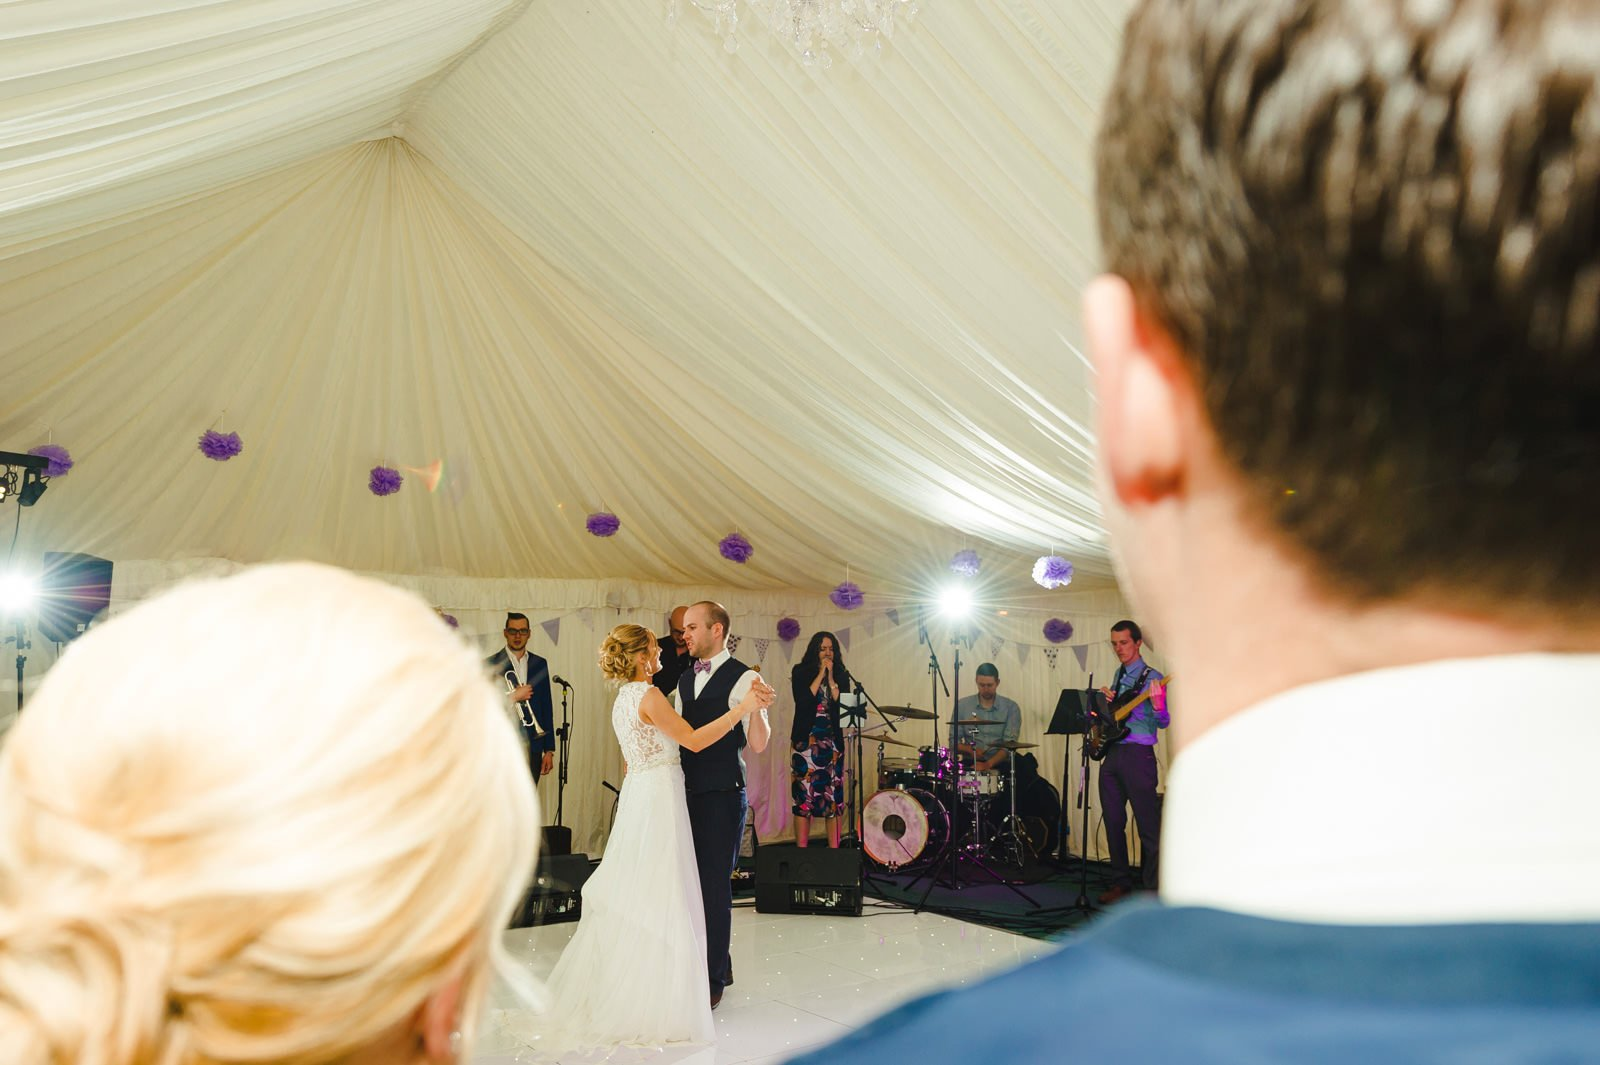 millers of netley wedding 106 - Millers Of Netley wedding, Dorrington, Shrewsbury | Emma + Ben